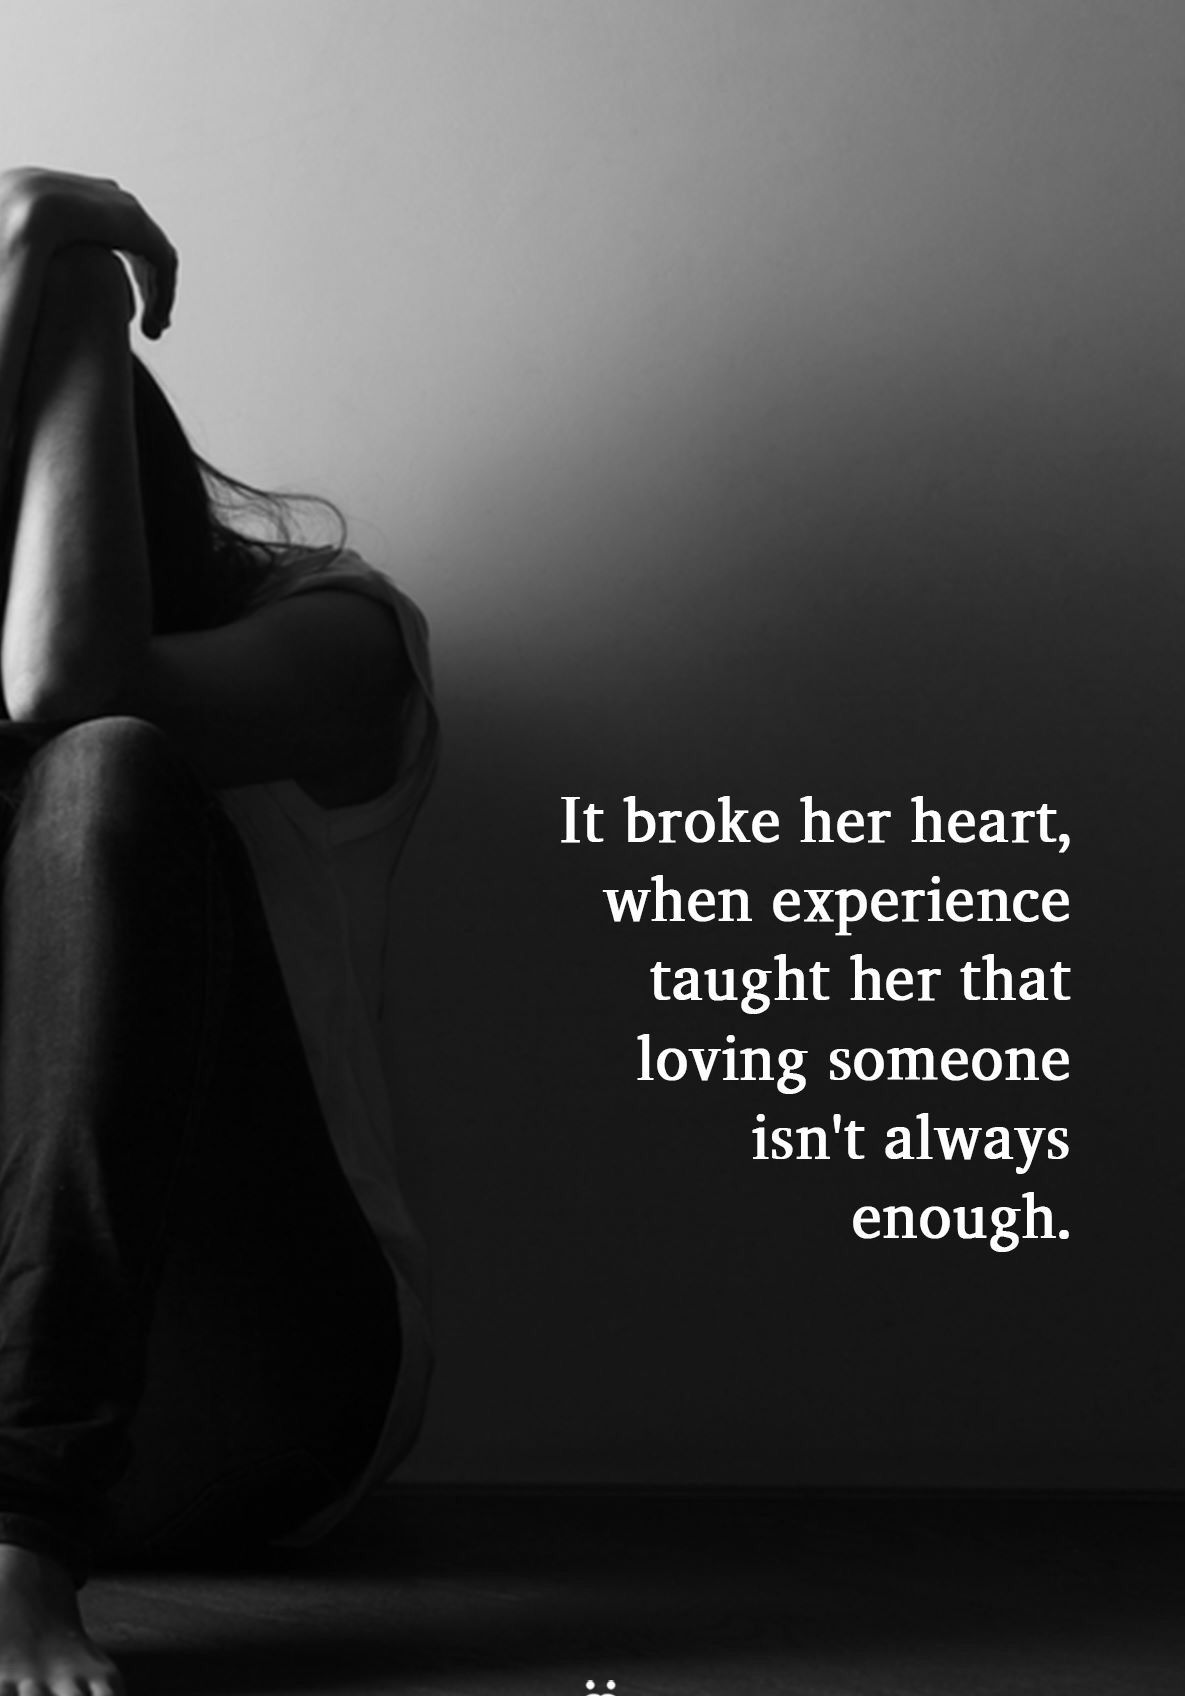 Pin on Relationship,Trust, love & life Quotes